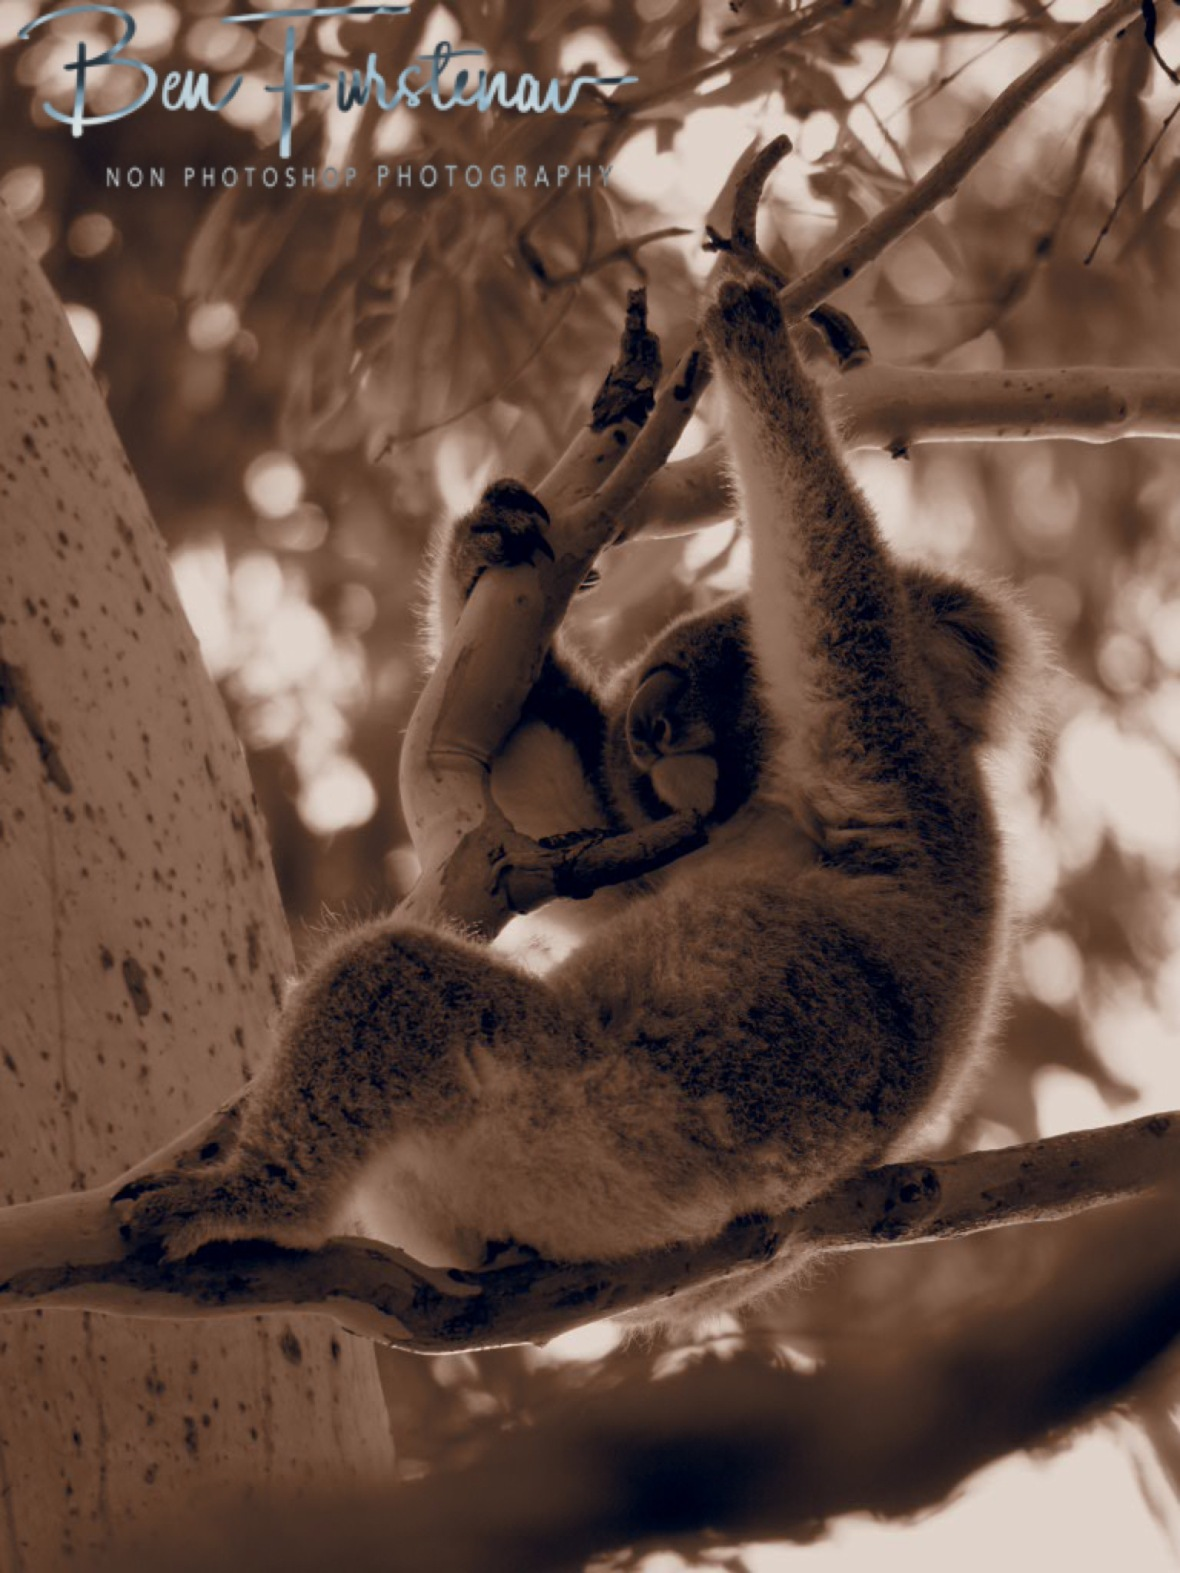 Resting koala in sepia at Woodburn, Northern New South Wales, Australia